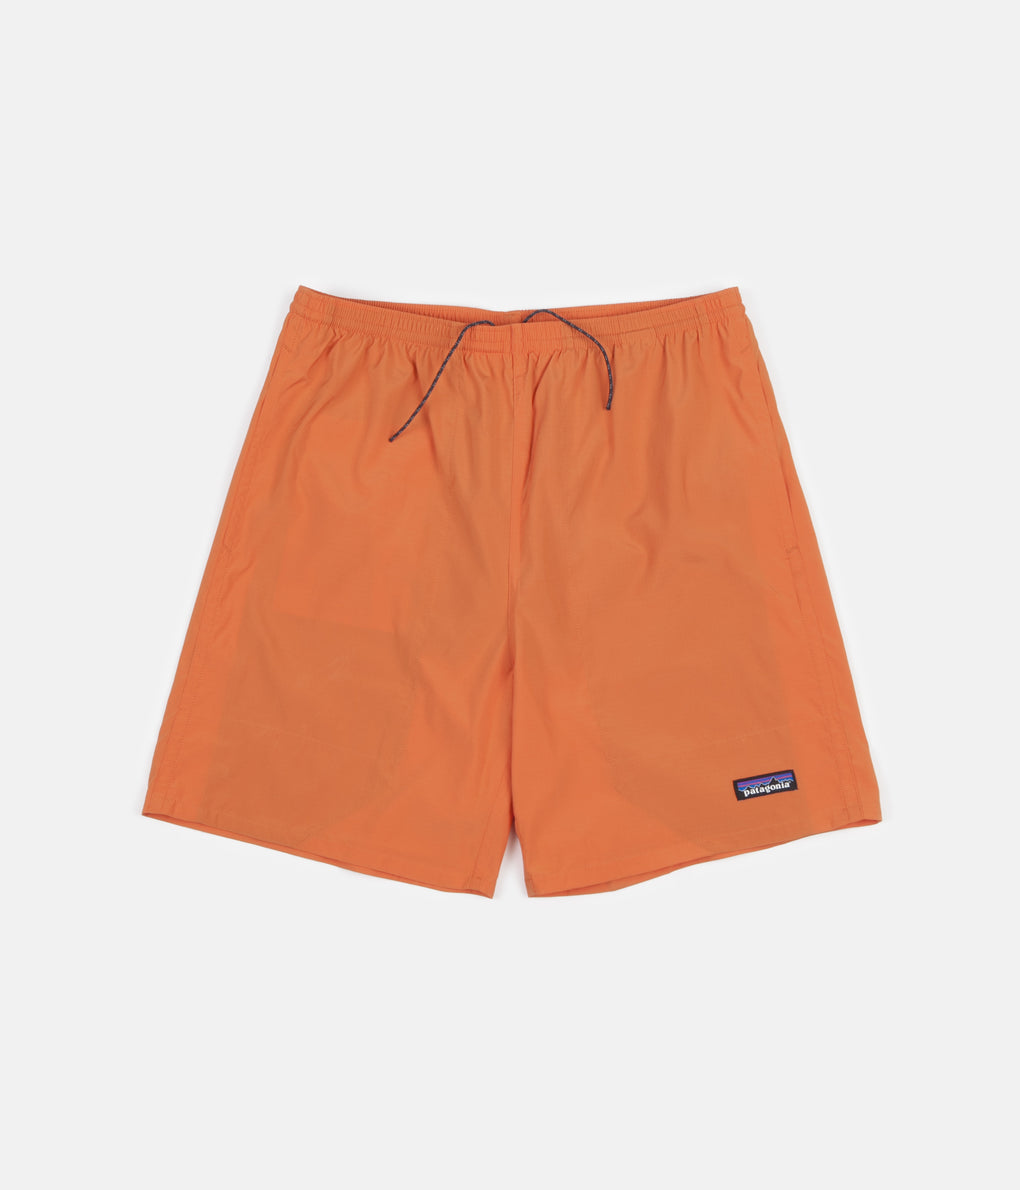 Patagonia Baggies Lights Shorts - Sunset Orange